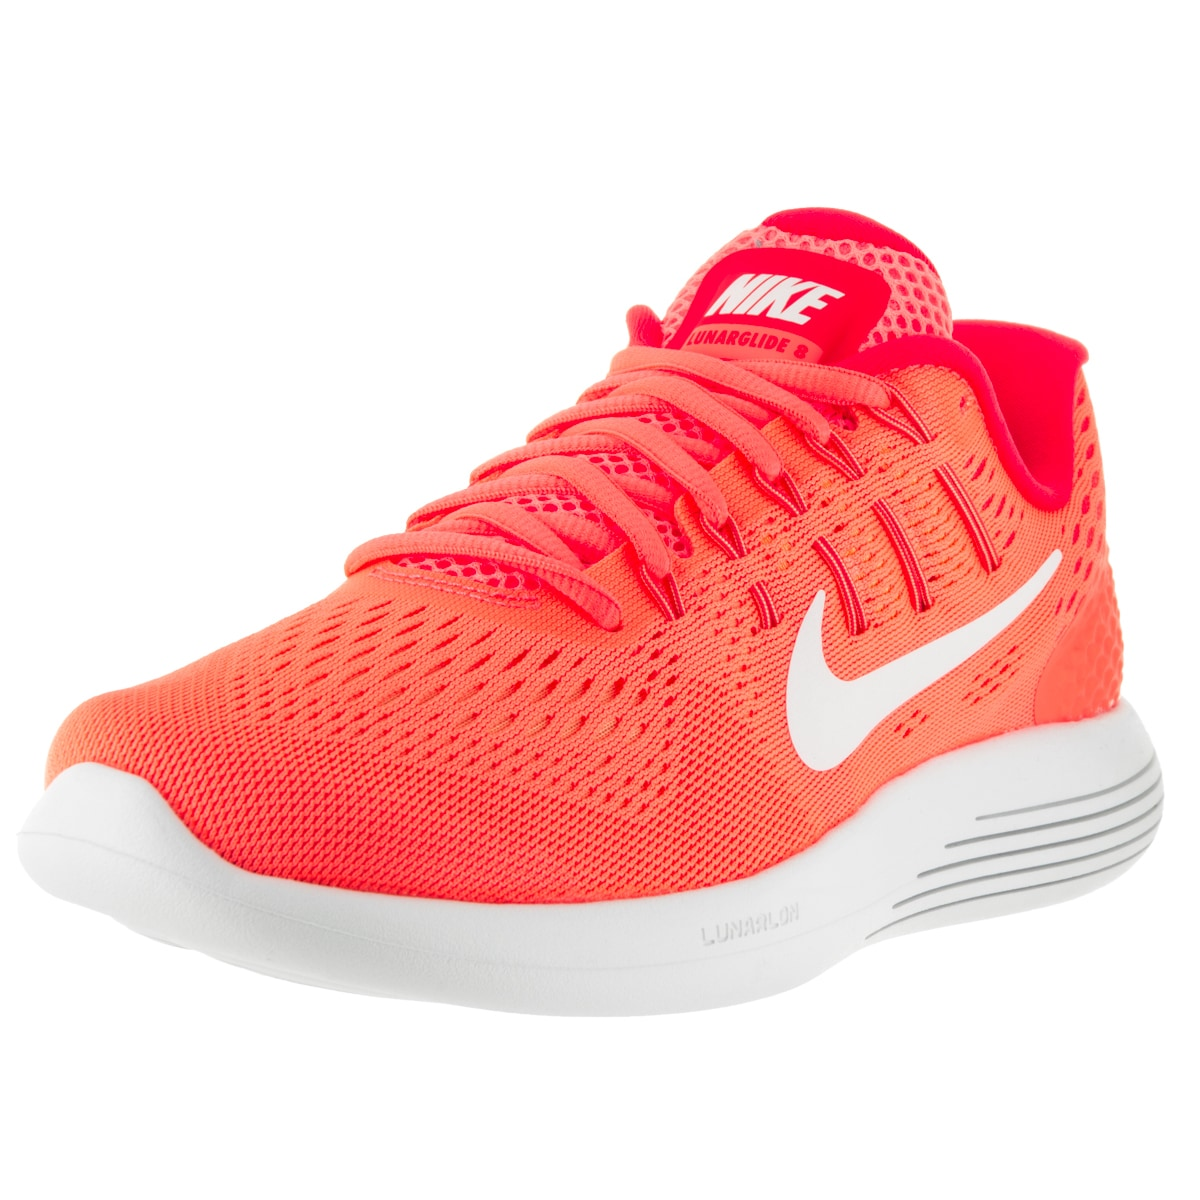 Nike Women's 'Lunarglide 8' Bright Mango, White, and Brig...